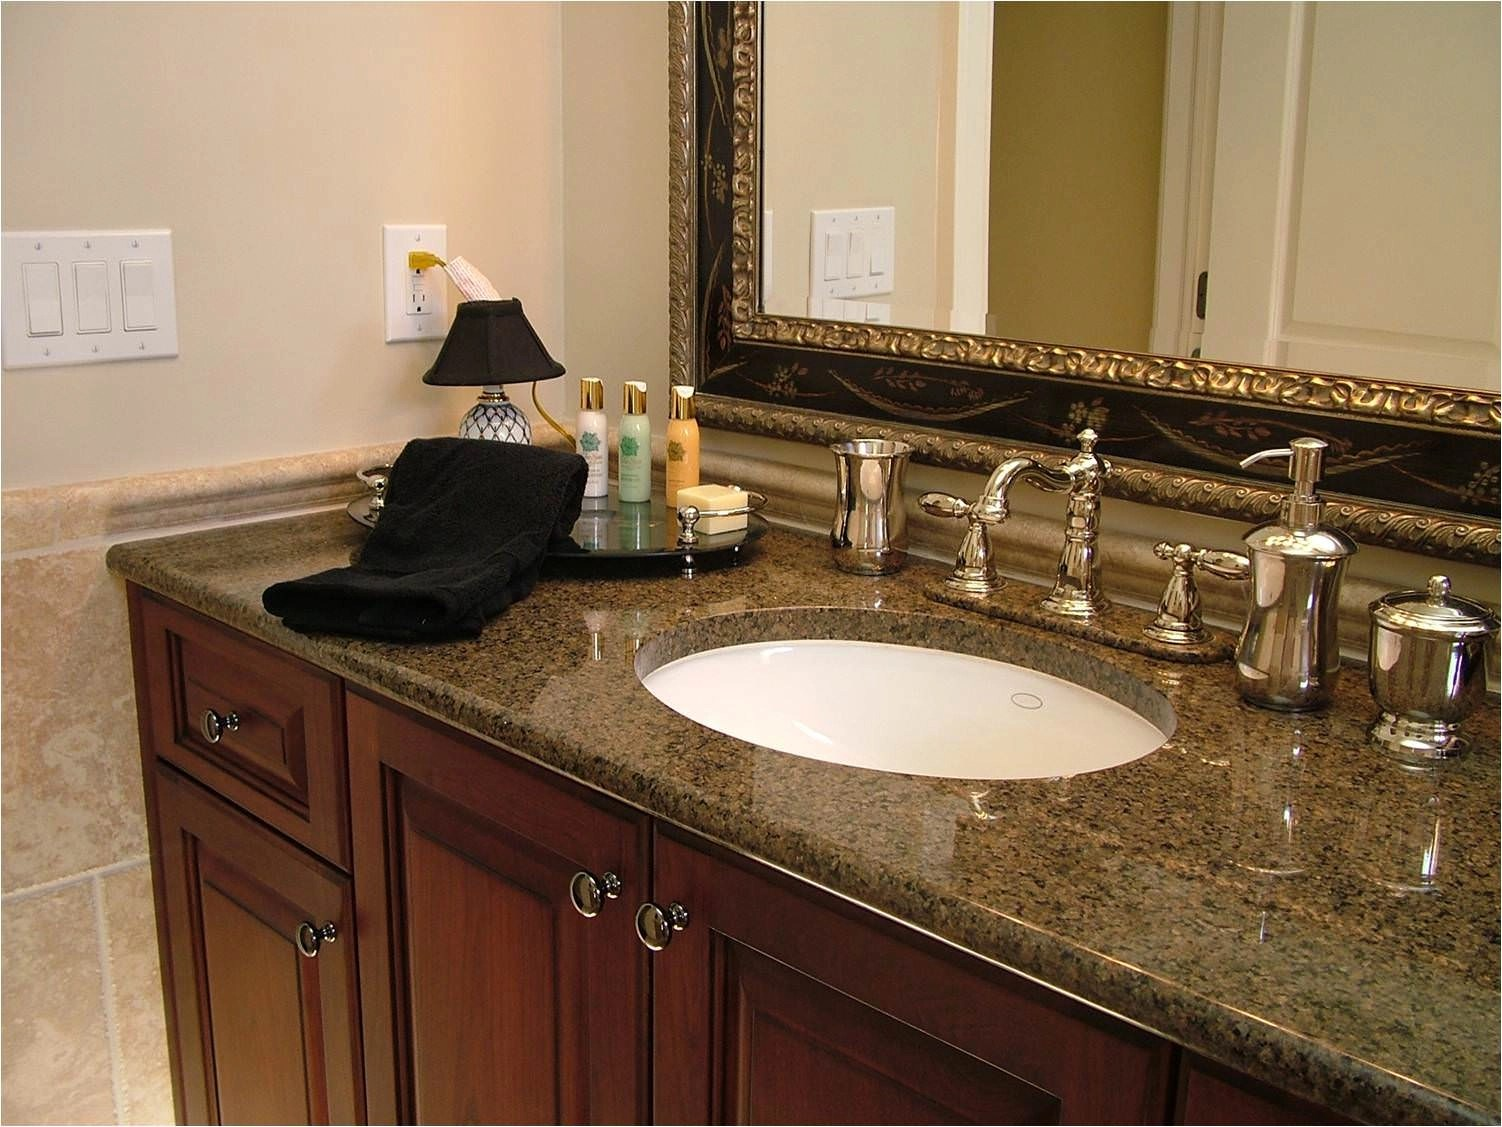 Natural Way To Clean Granite Countertops Natural Stone Countertop For Your Bathroom